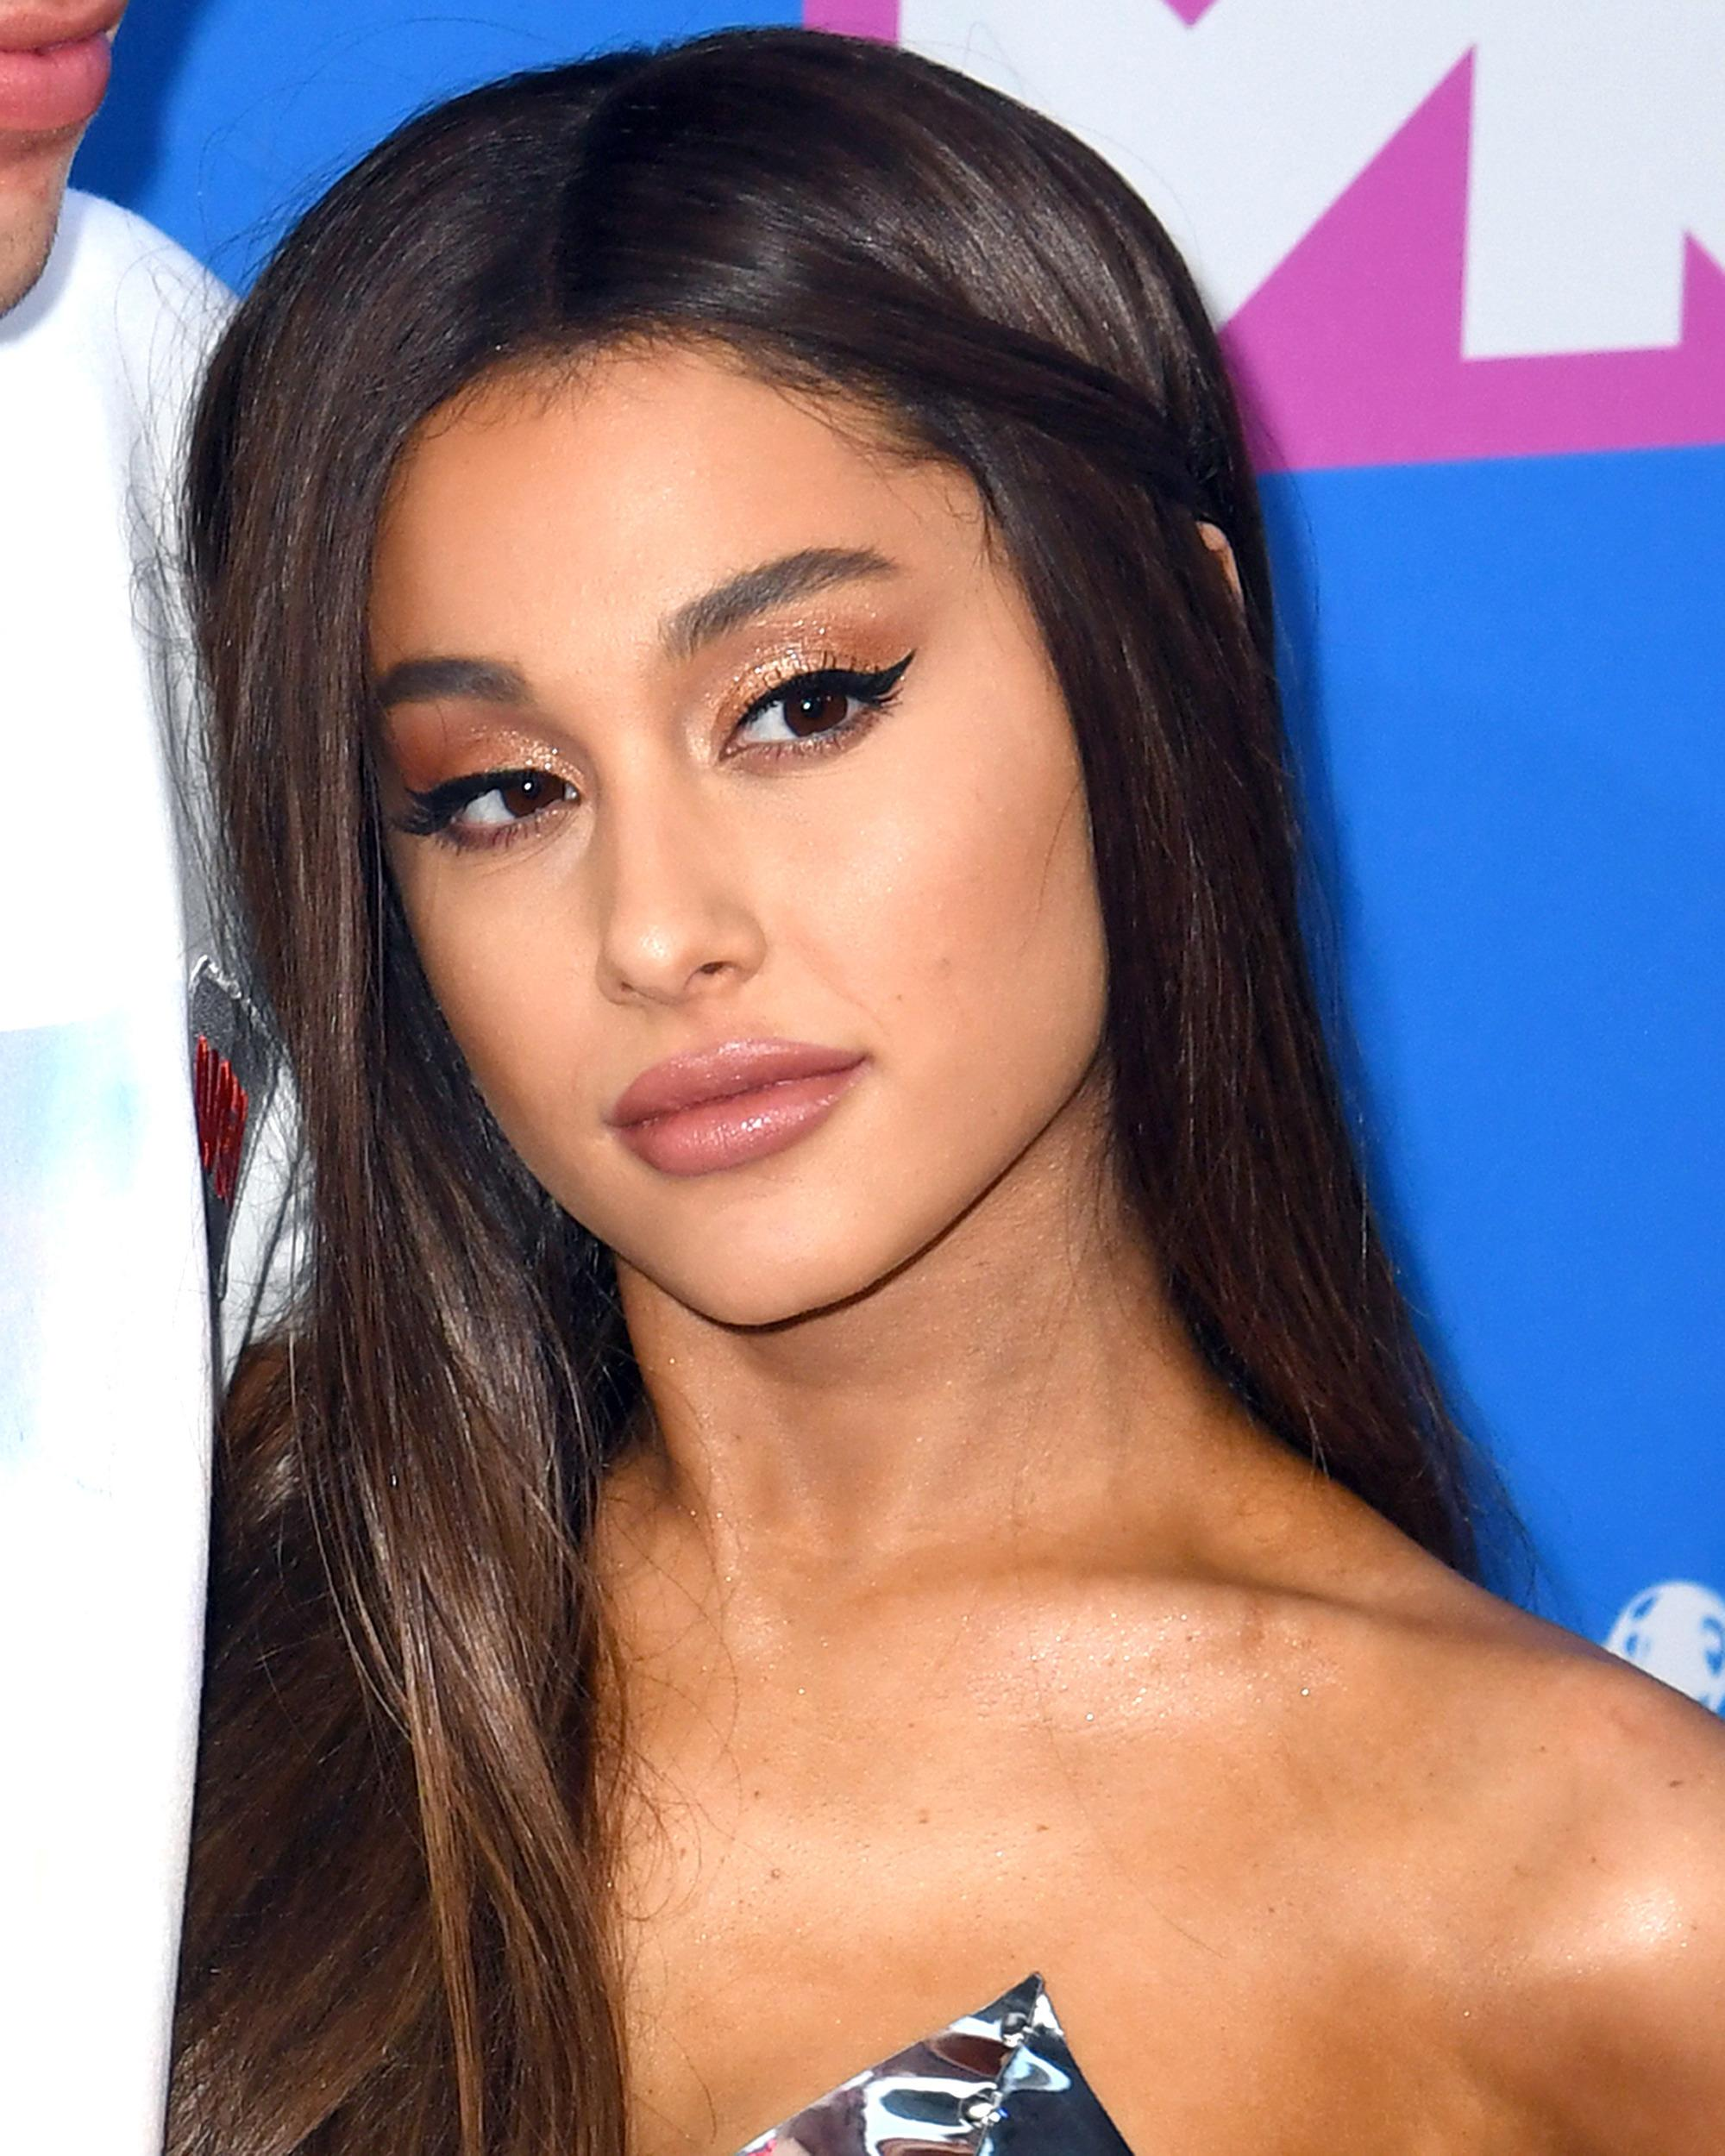 File photo dated 20/08/18 of Ariana Grande, who has accused Grammys organiser Ken Ehrlich of stifling her creativity as she gave her reasons for her withdrawal from the show.